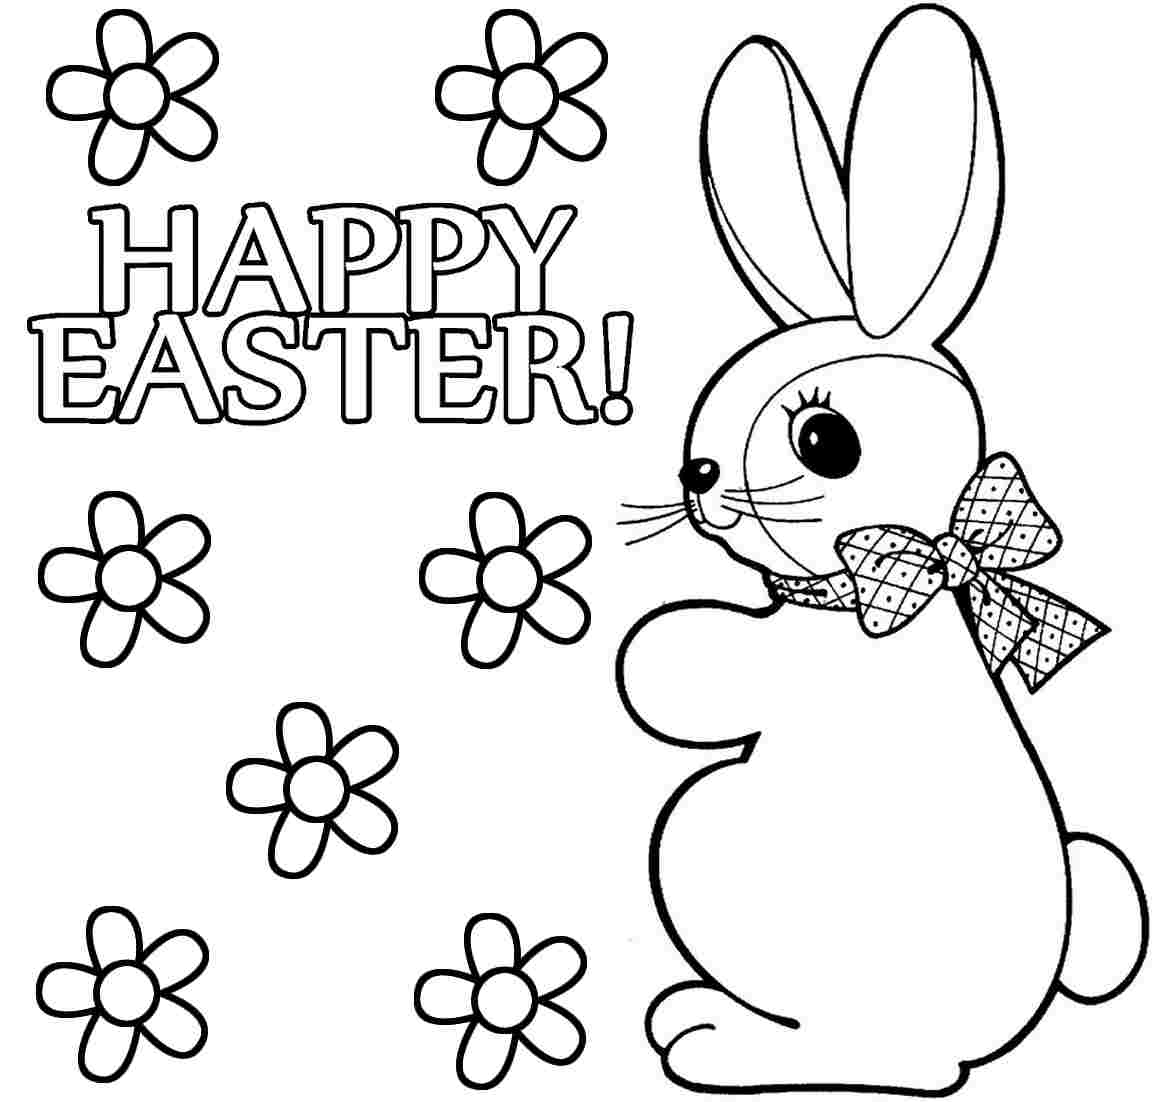 1152x1102 Easter Bunny Coloring Page Pages New Glum Me And Bloodbrothers